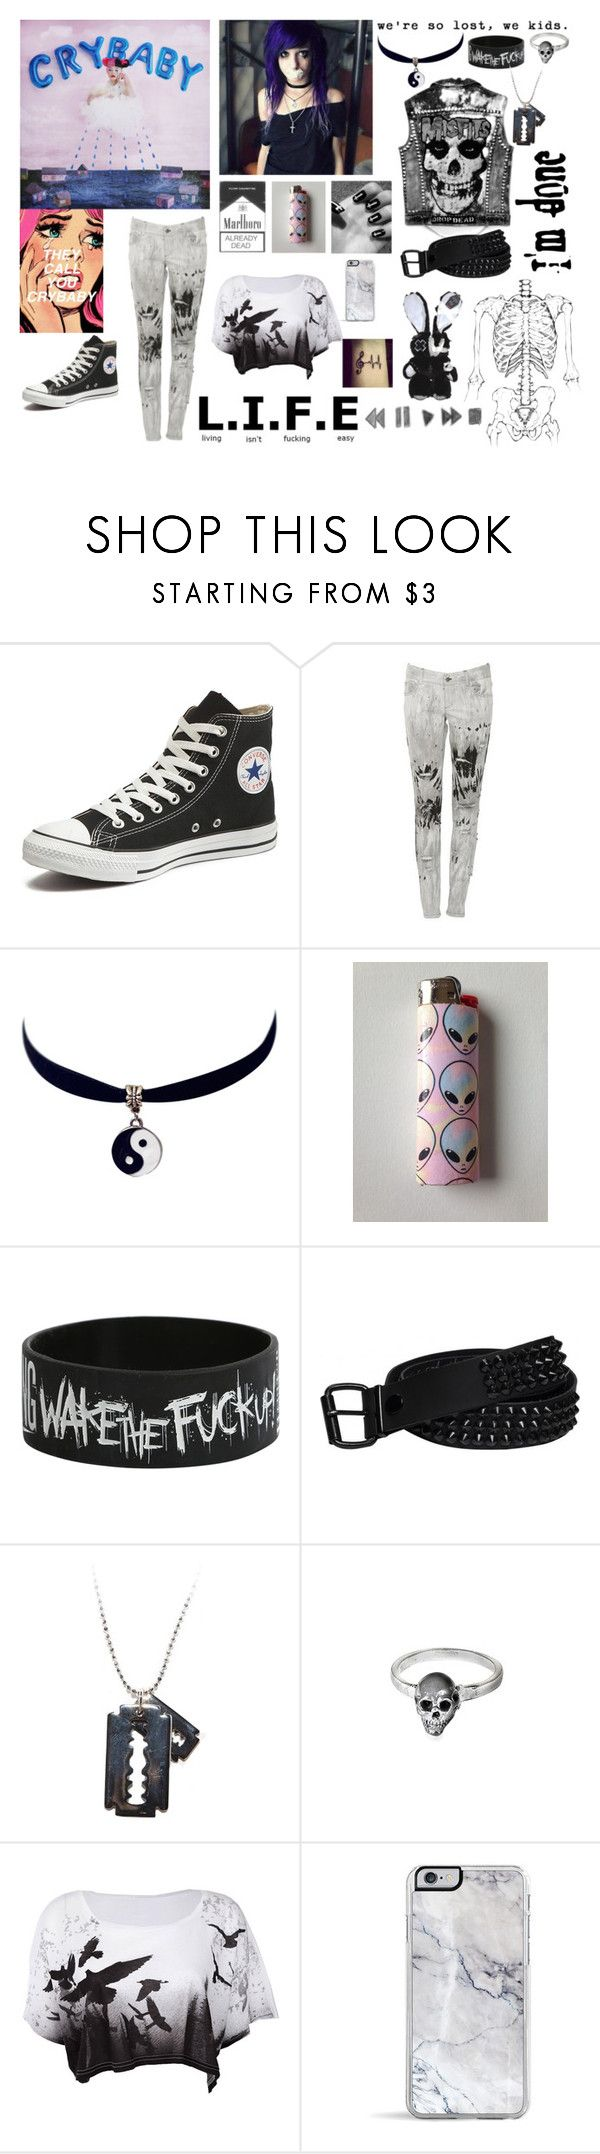 """""""CryBaby By Melanie Martinez"""" by lost-girl-reily ❤ liked on Polyvore featuring Converse, Alice + Olivia, Chicnova Fashion, Hot Topic and Delfina Delettrez"""